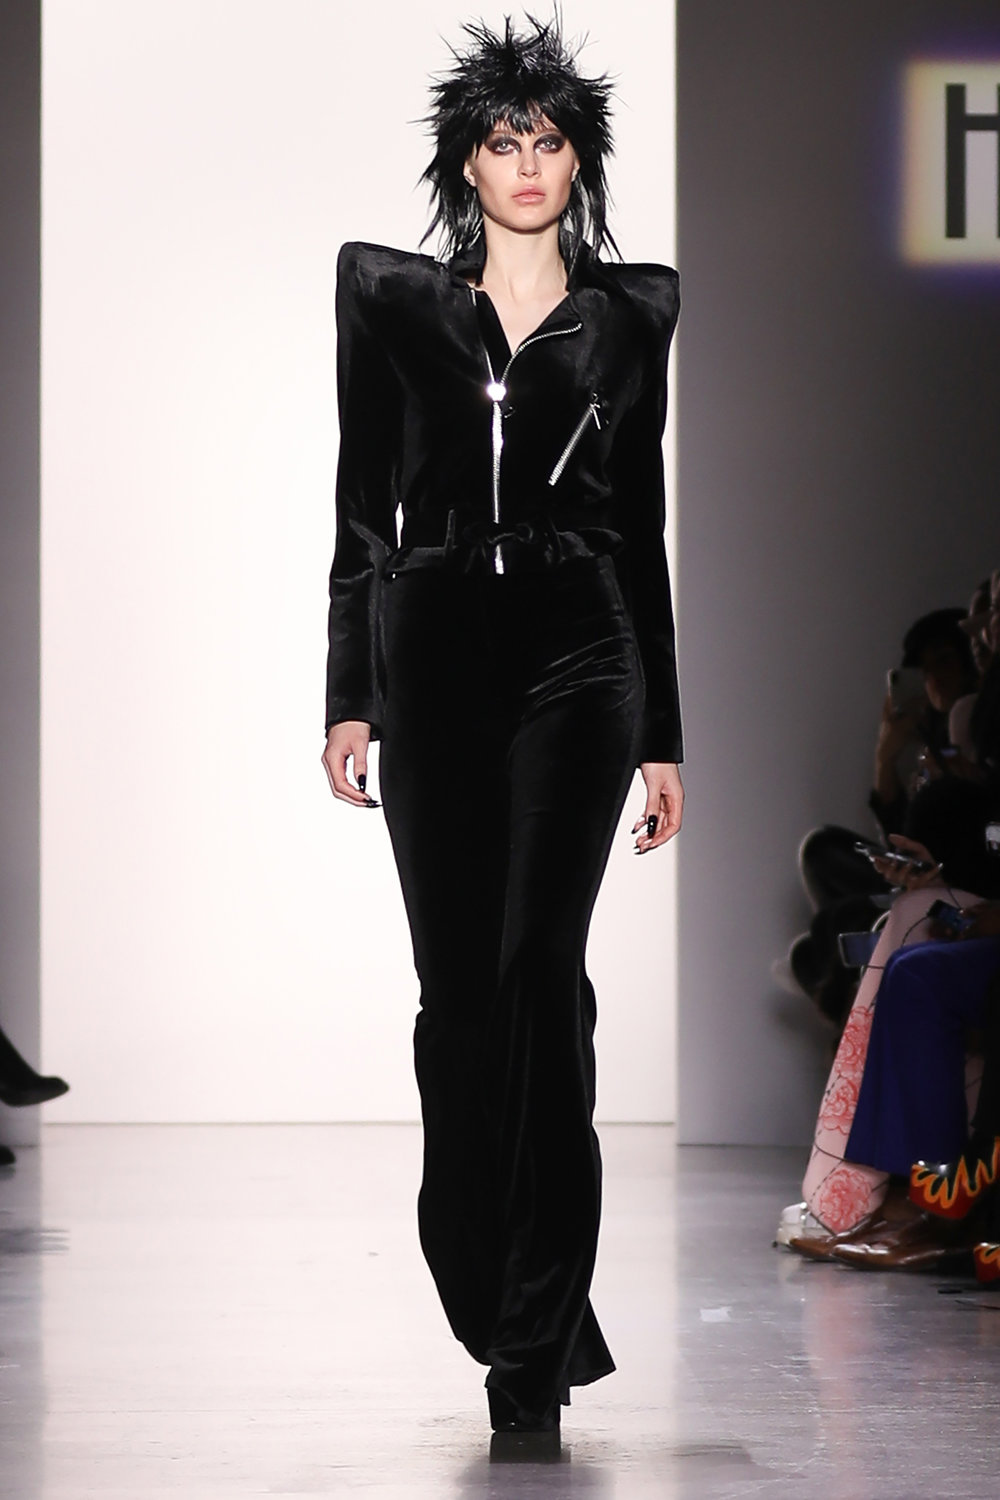 Hakan-Akkaya-NYFW-Fall-2019-43-300dpi-Photo-Credit-Elvia-Gobbo.jpg